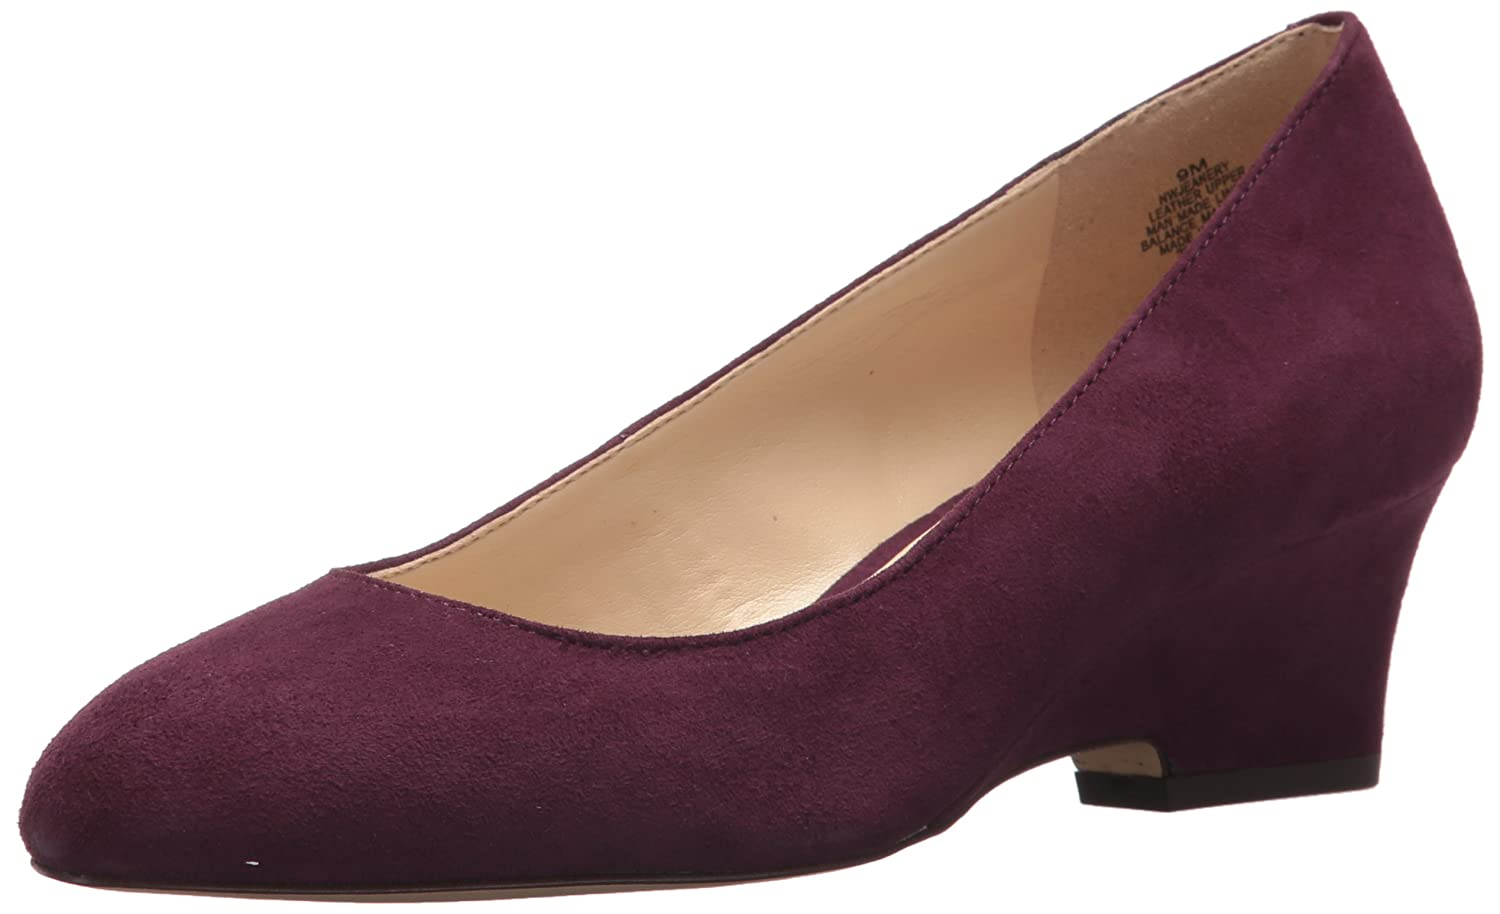 Nine West Women's Jeanery Suede Pump B0733L6GT2 10.5 B(M) US|Dark Purple Suede